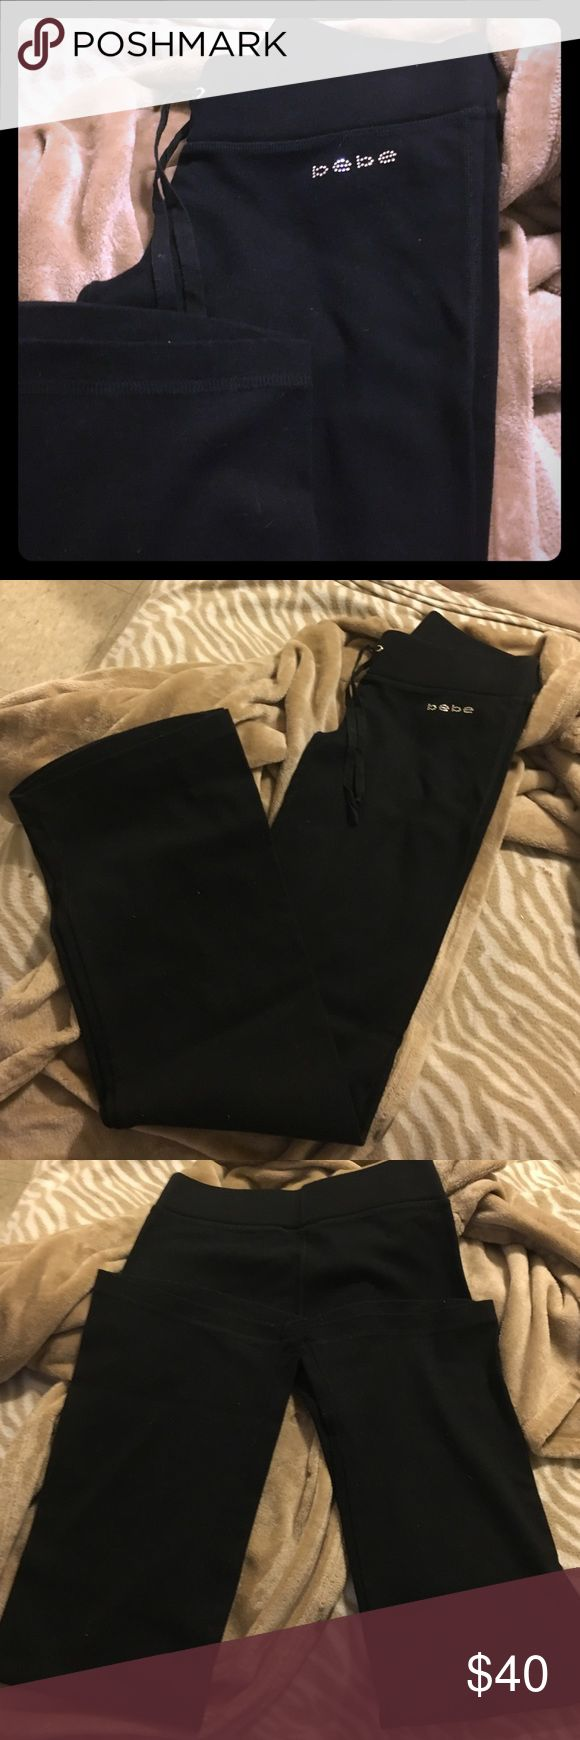 """🆕Bebe Rhinestone Embellished Black Joggers Brand New!  Bebe Designer Joggers.  Black &+ Rhinestone Embellishments. COMFORTABLE.  QUALITY.  Tie in the Front.  Size Small.  Questions Please Ask!  Laid Flat 32"""" Inseam. Laid Flat 14"""" Across the Waist.                                         📬Same Day Shipping! bebe Pants"""